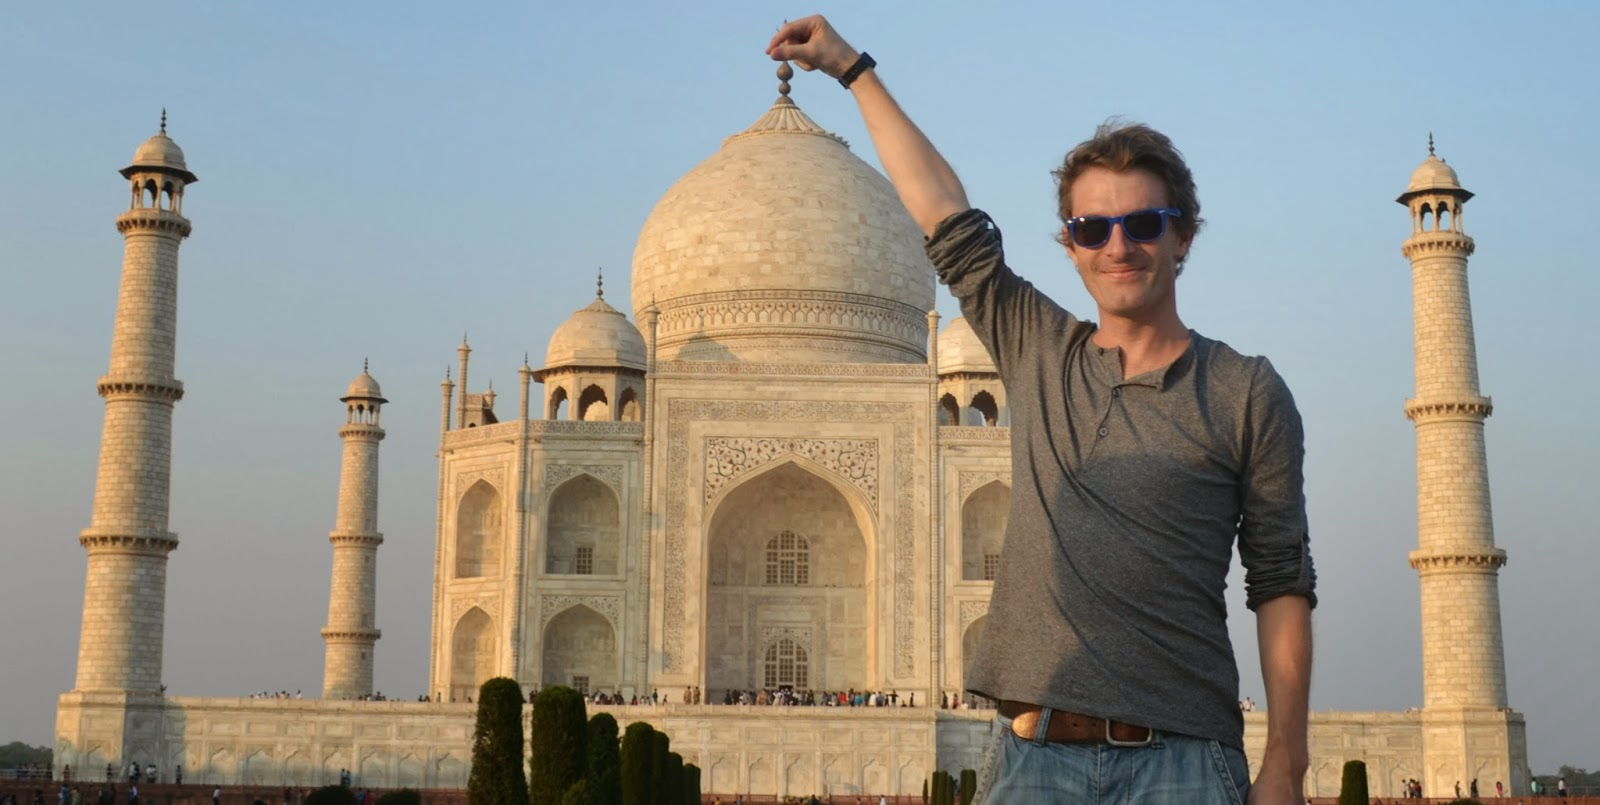 Steve holding the Taj Mahal